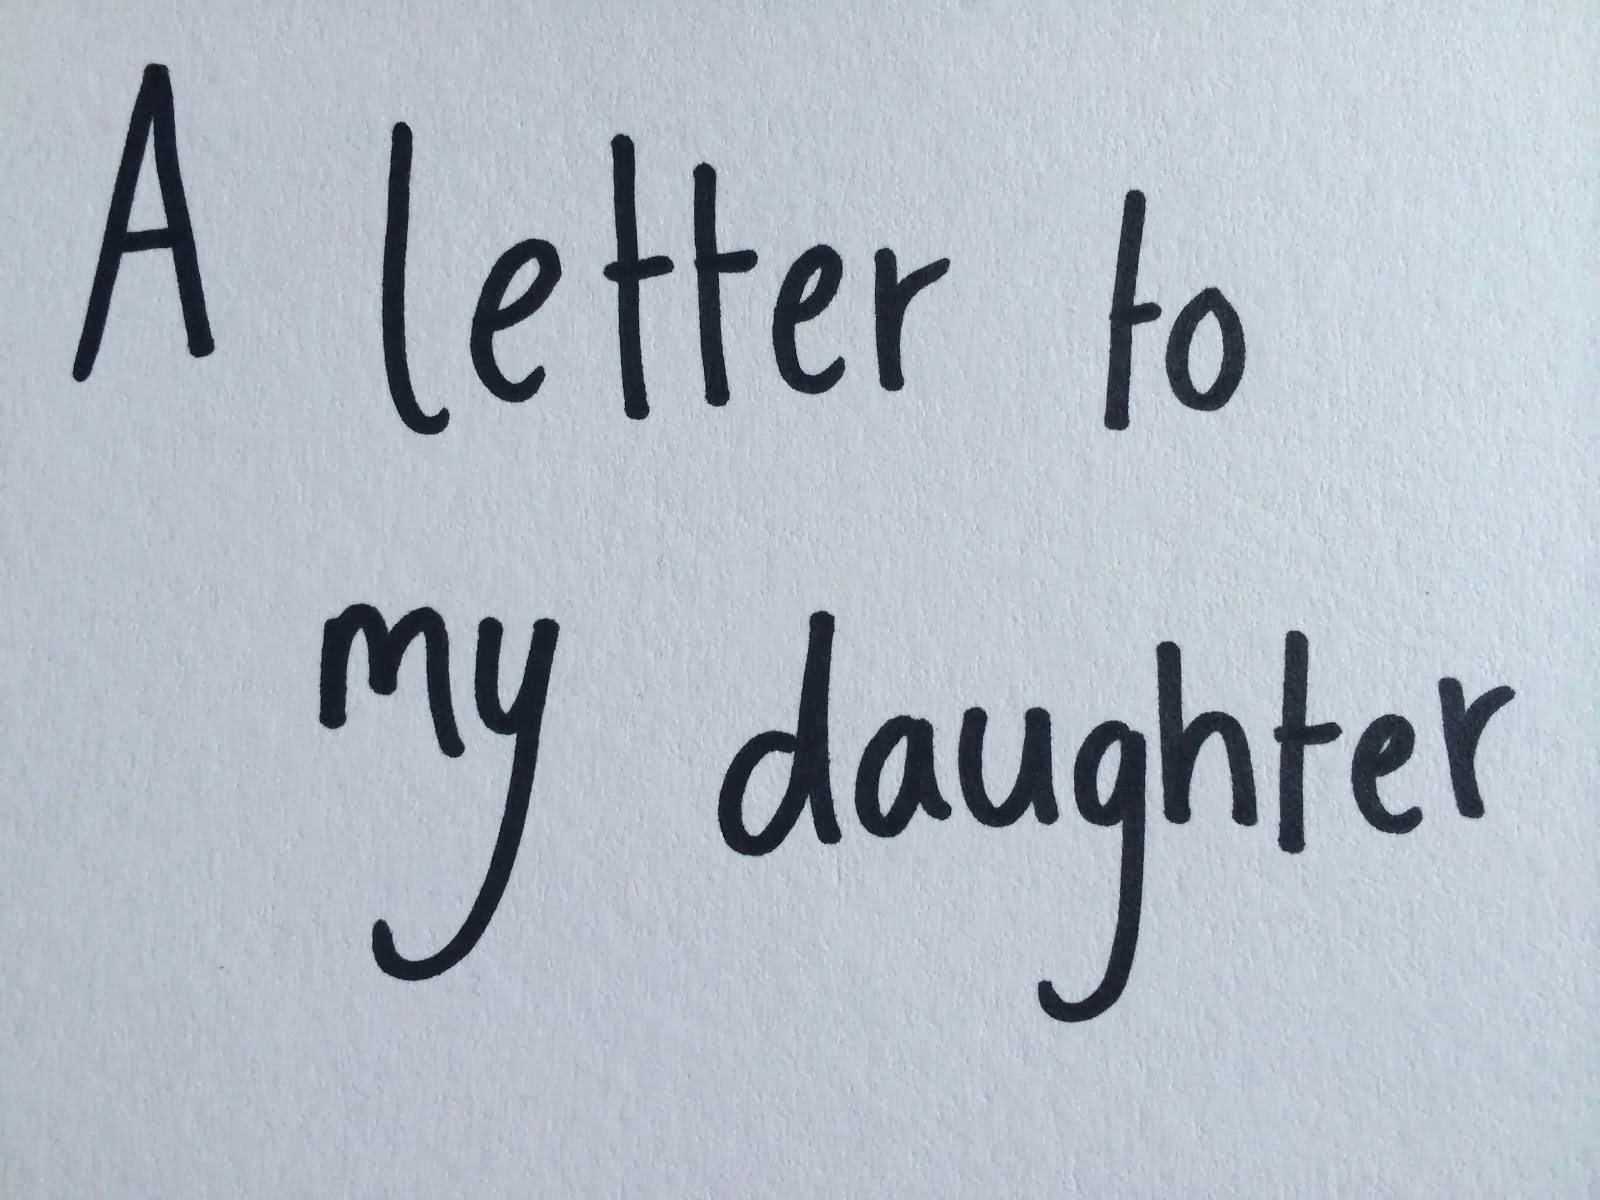 I wrote to the daughter I don't have. What would you say to your future children?